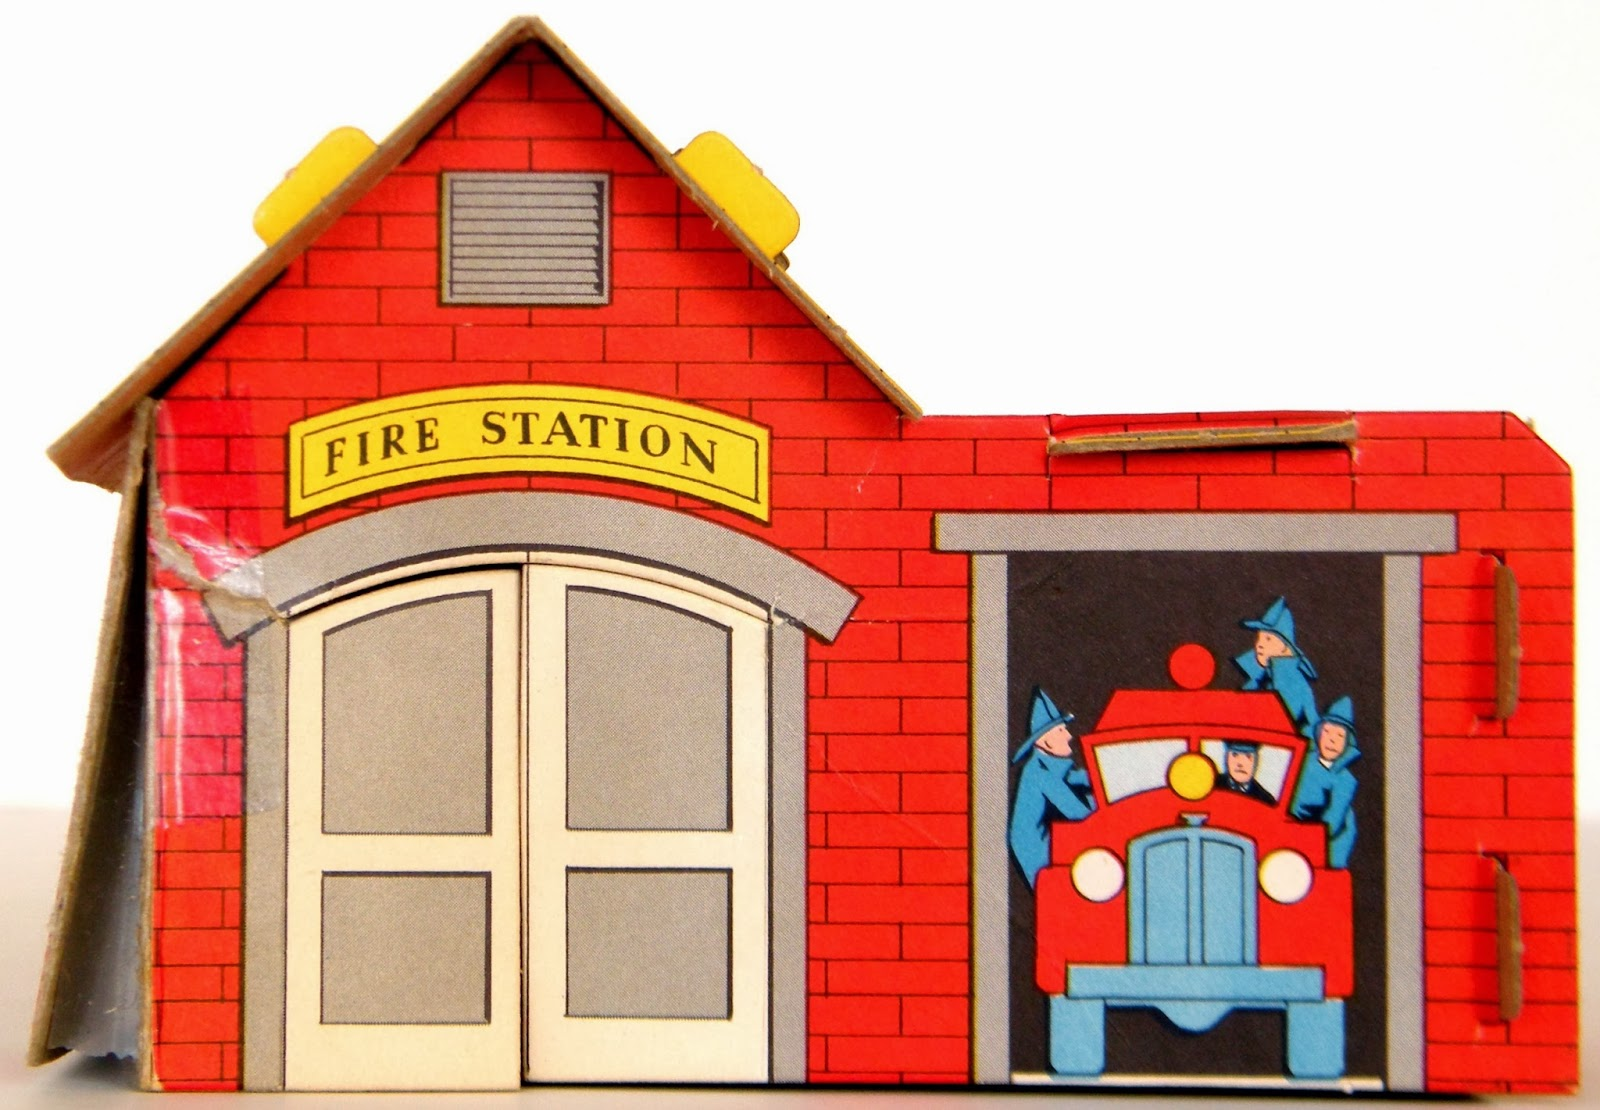 Fire Station Building Clipart.